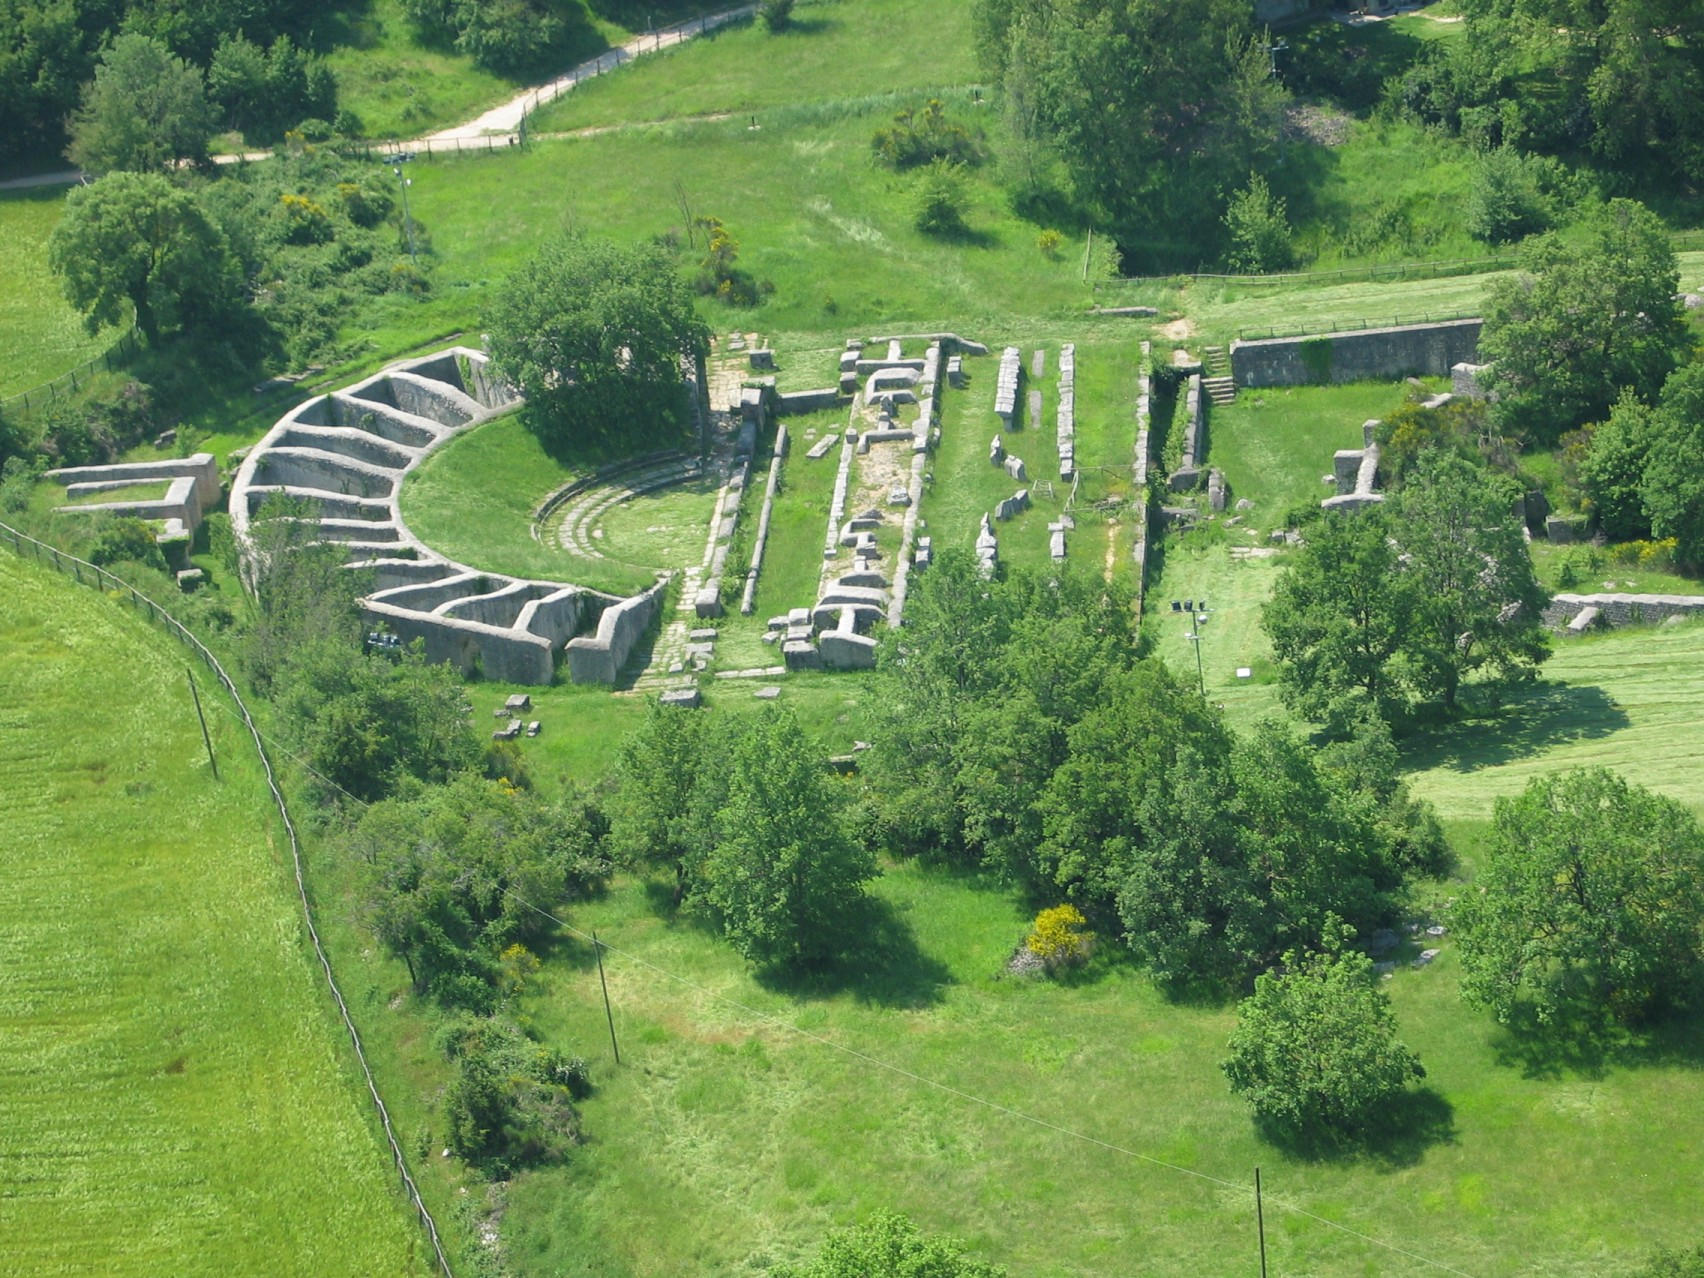 A visit to the Archaeological Park of Carsulae